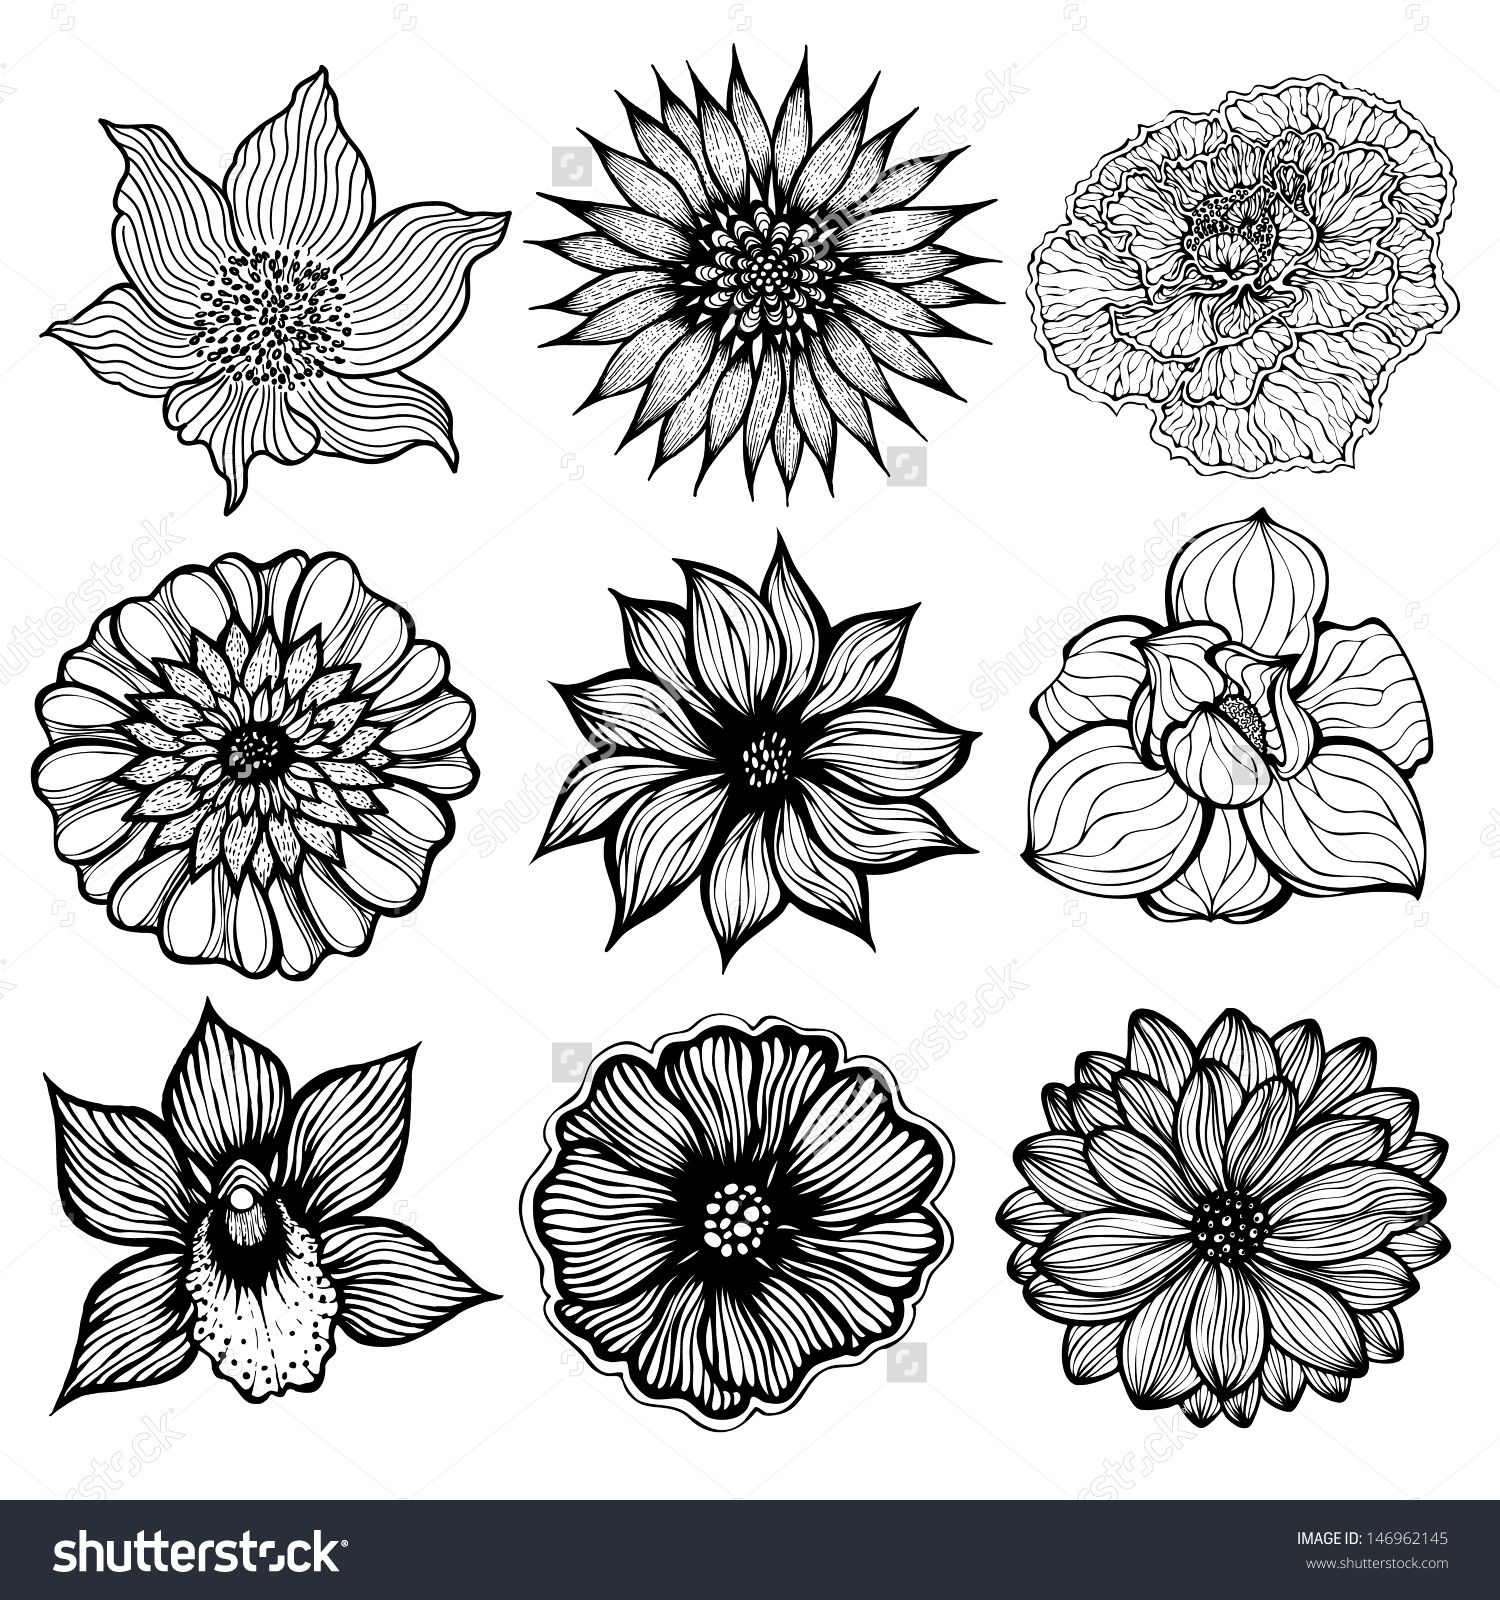 Set of 9 different hand drawn flowers, black and white